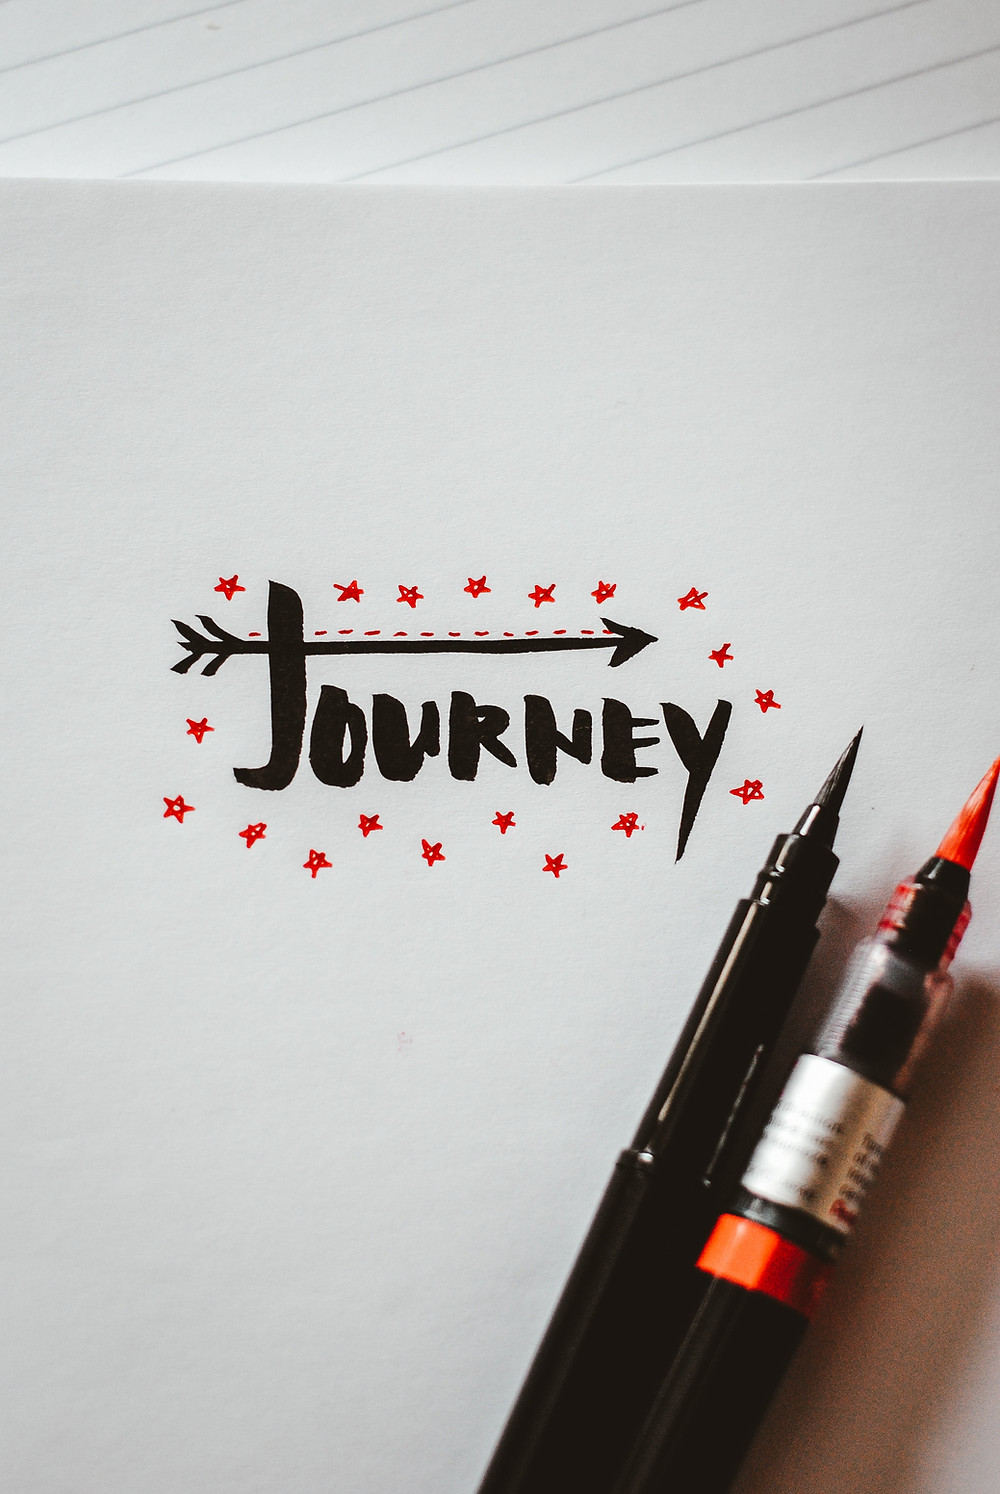 the word journey written out